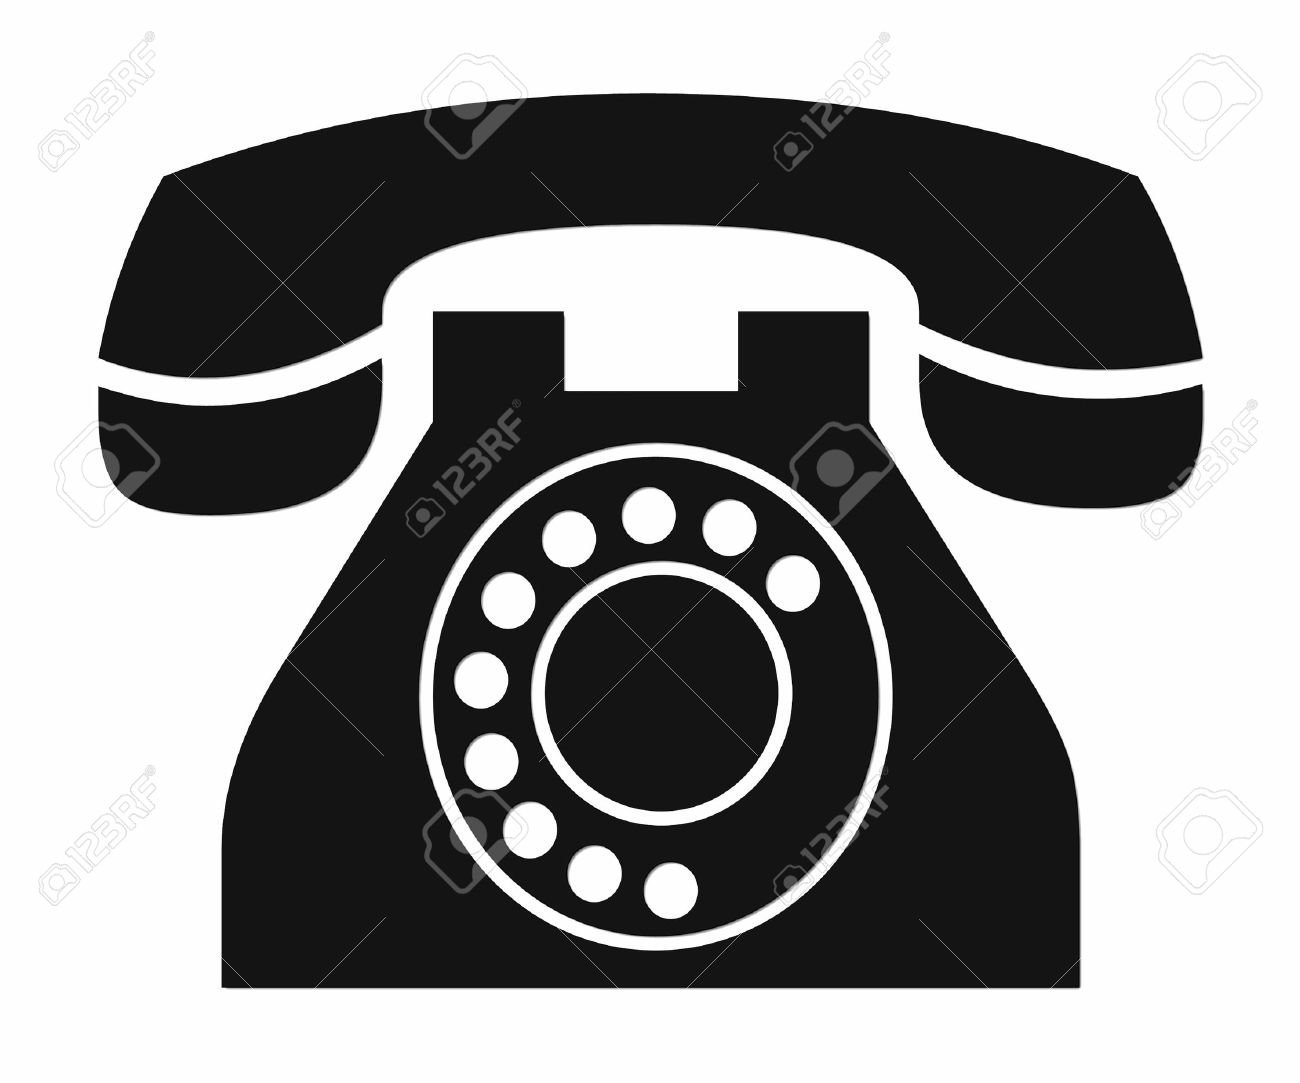 Telefono clipart clipart Telefono clipart 2 » Clipart Station clipart